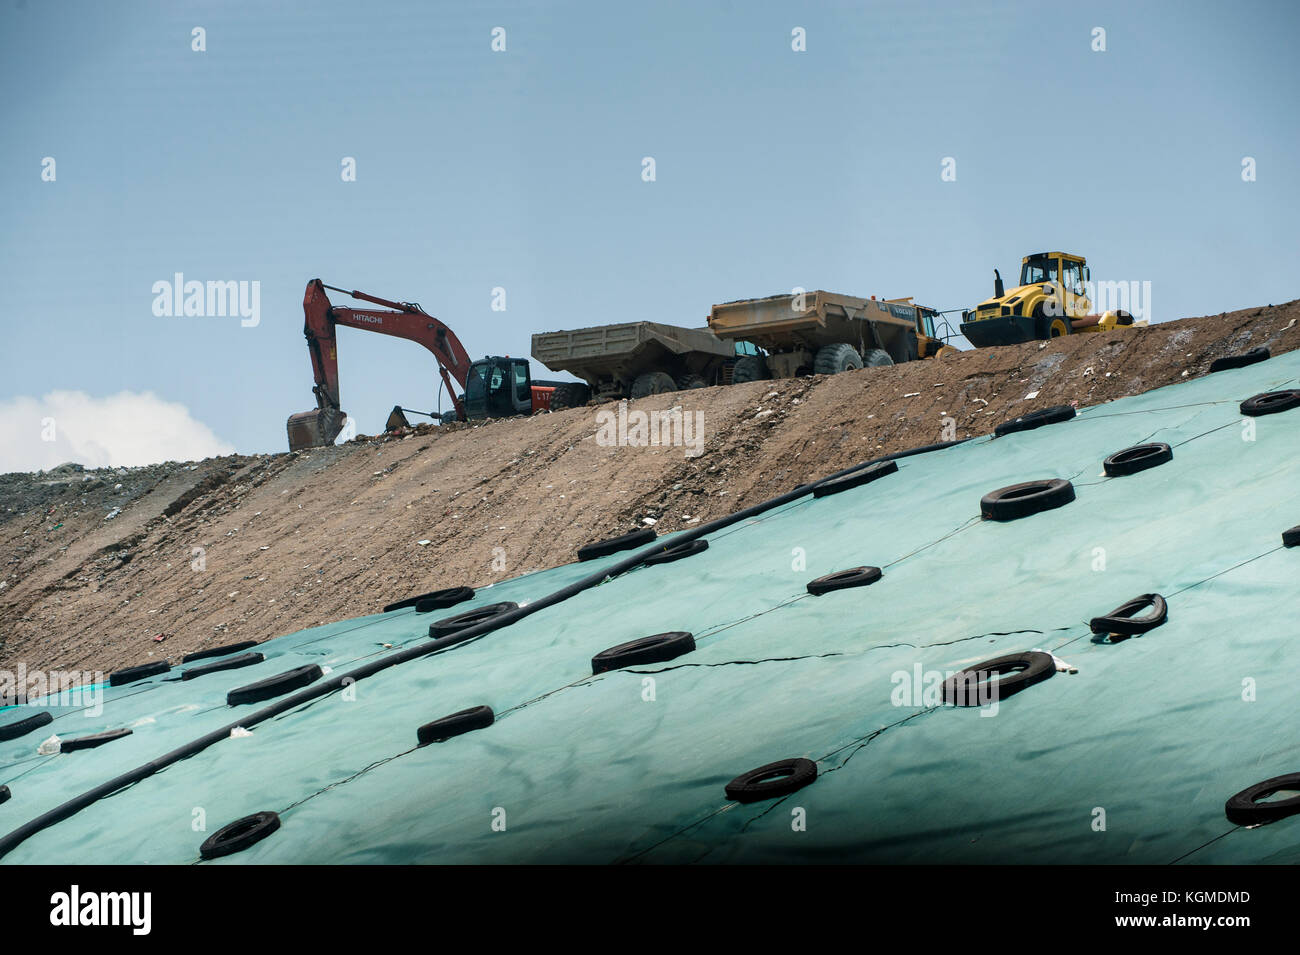 Sar Conference Stock Photos & Sar Conference Stock Images - Alamy